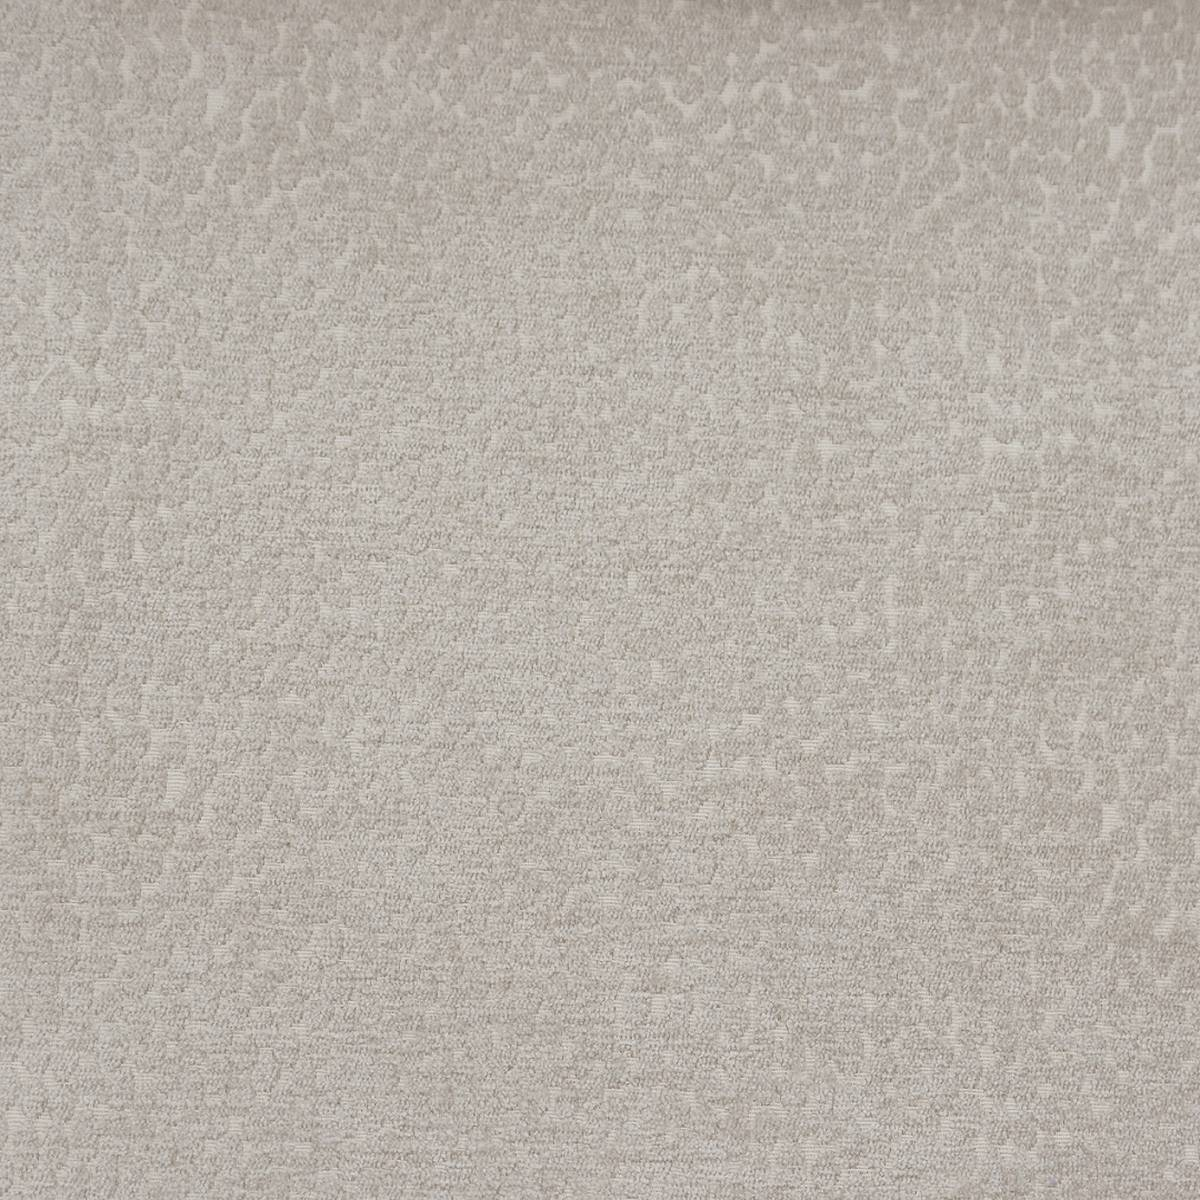 Pebble Fabric Dove Pebbledove Voyage Diffusion Pebble Orton Windermere Fabrics Collection